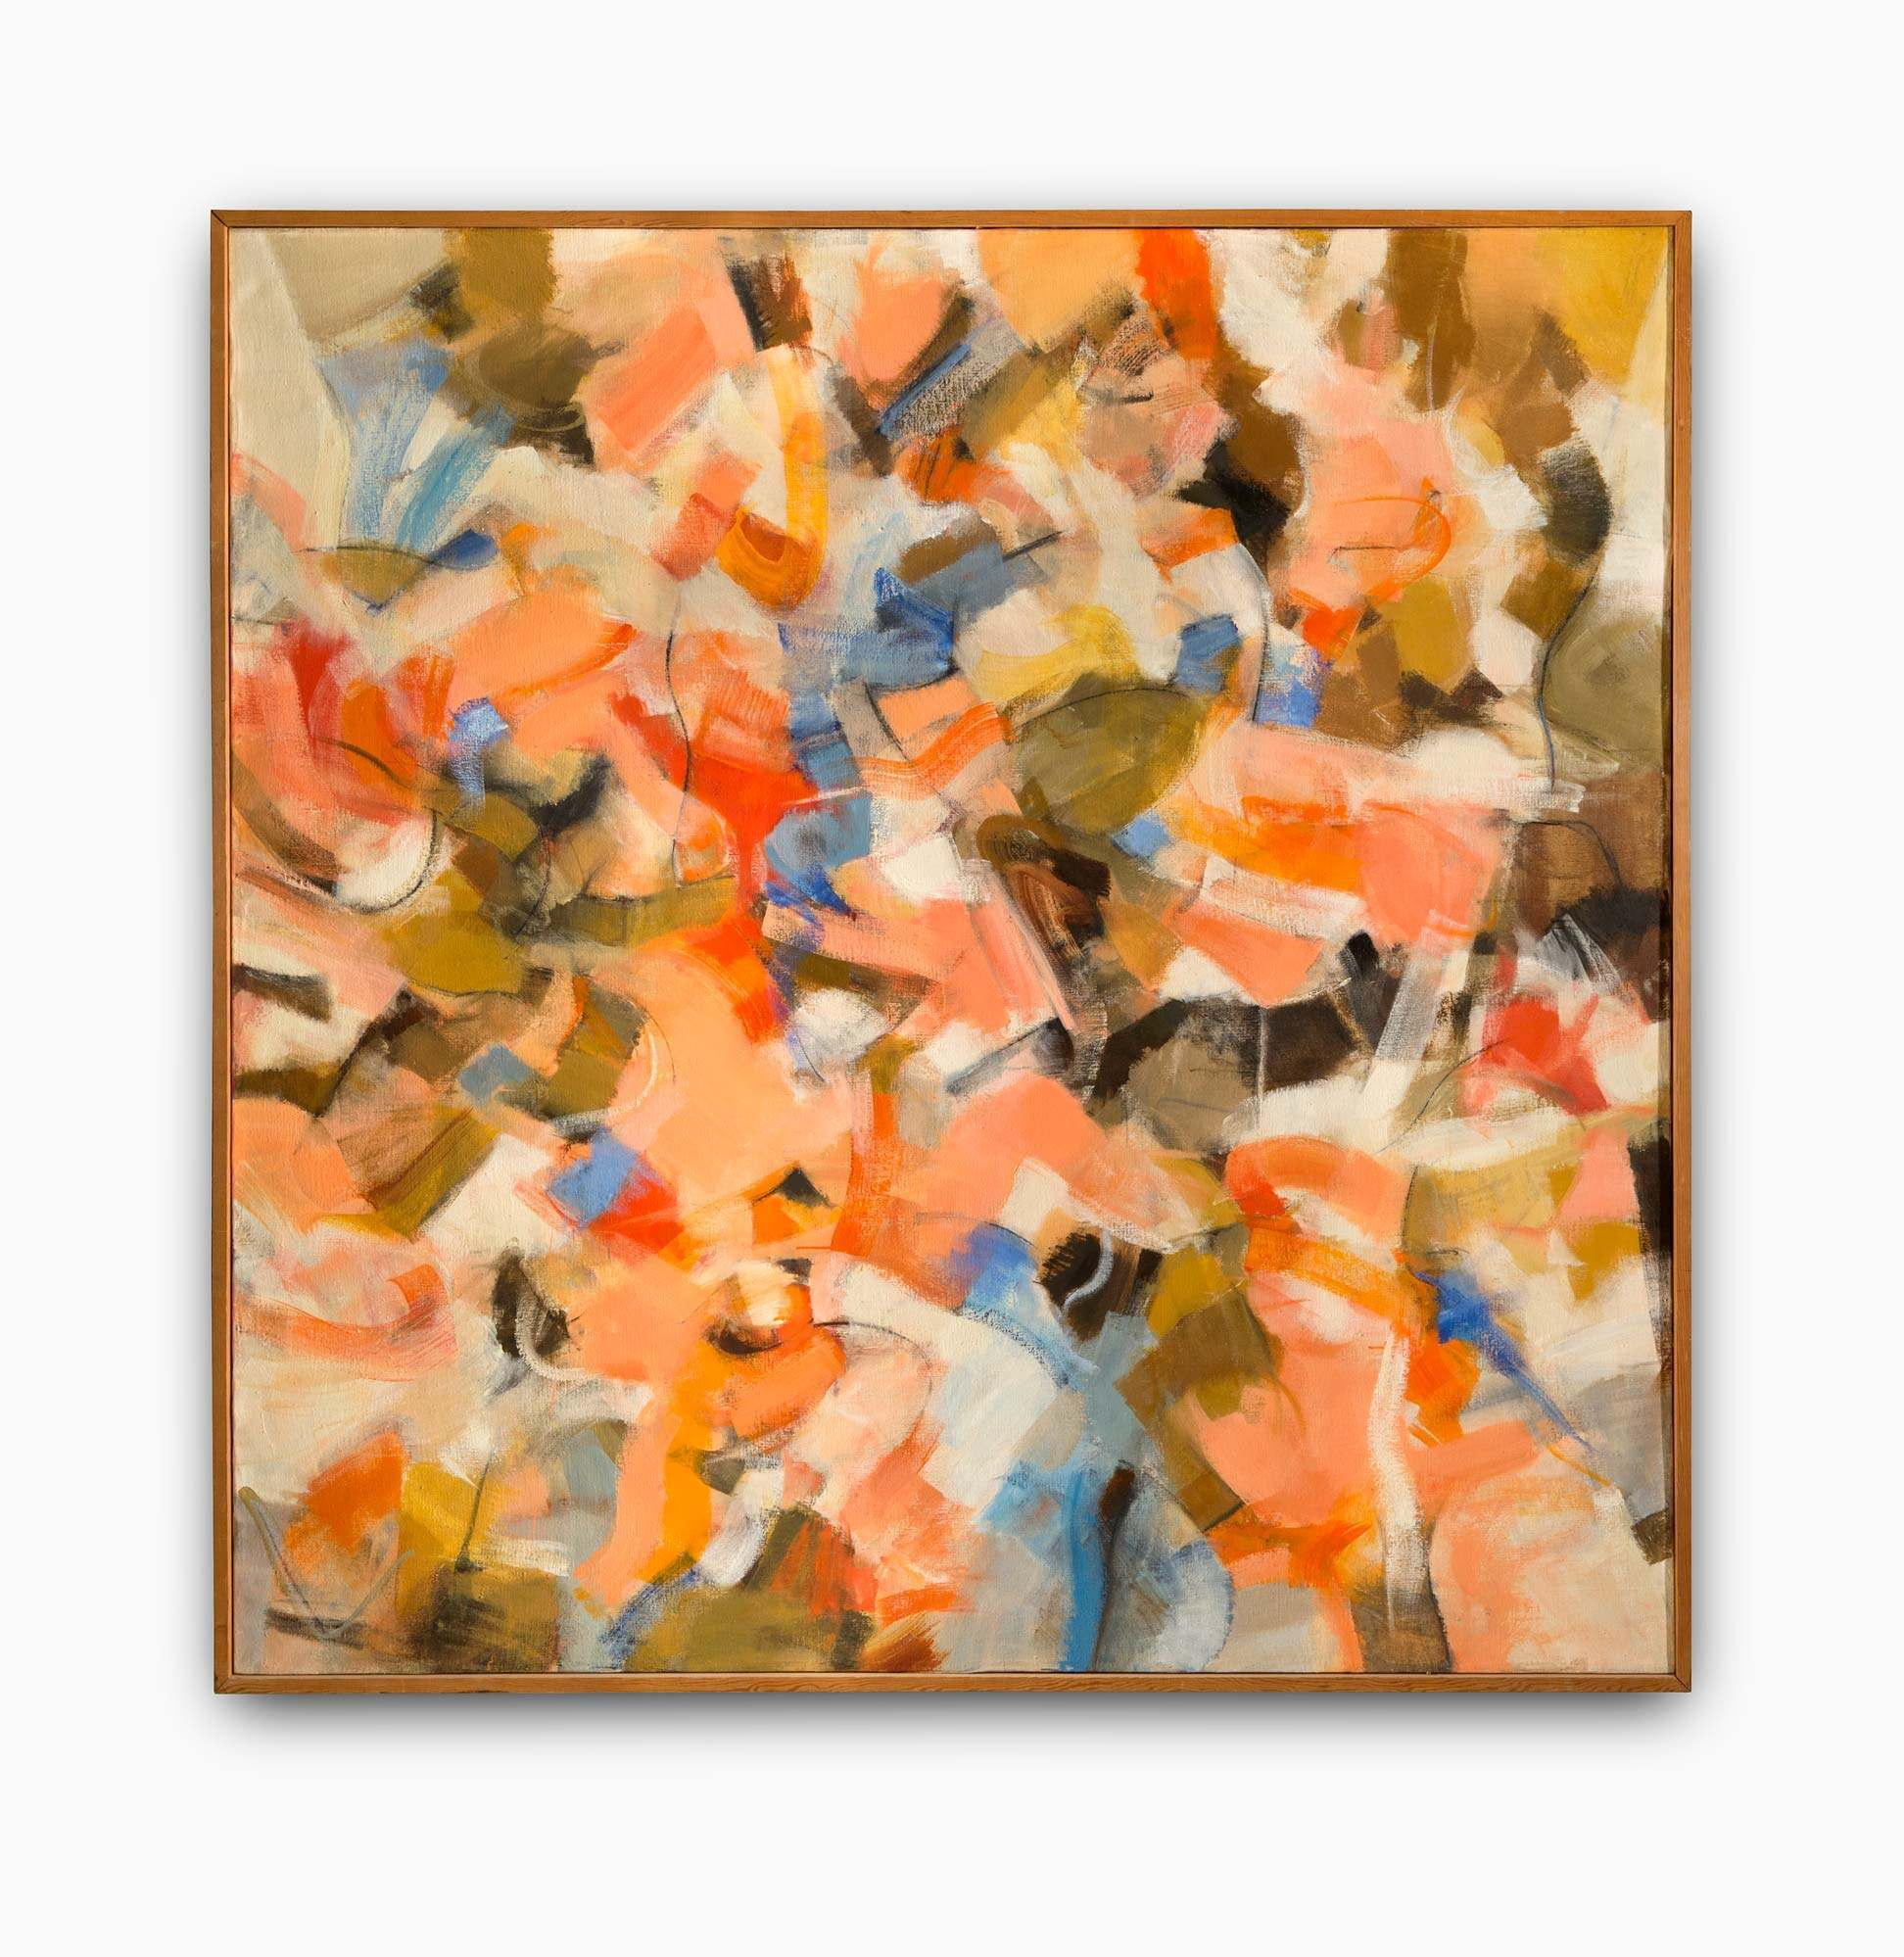 Frank Okada's Untitles. Large abstract painting in wood frame.